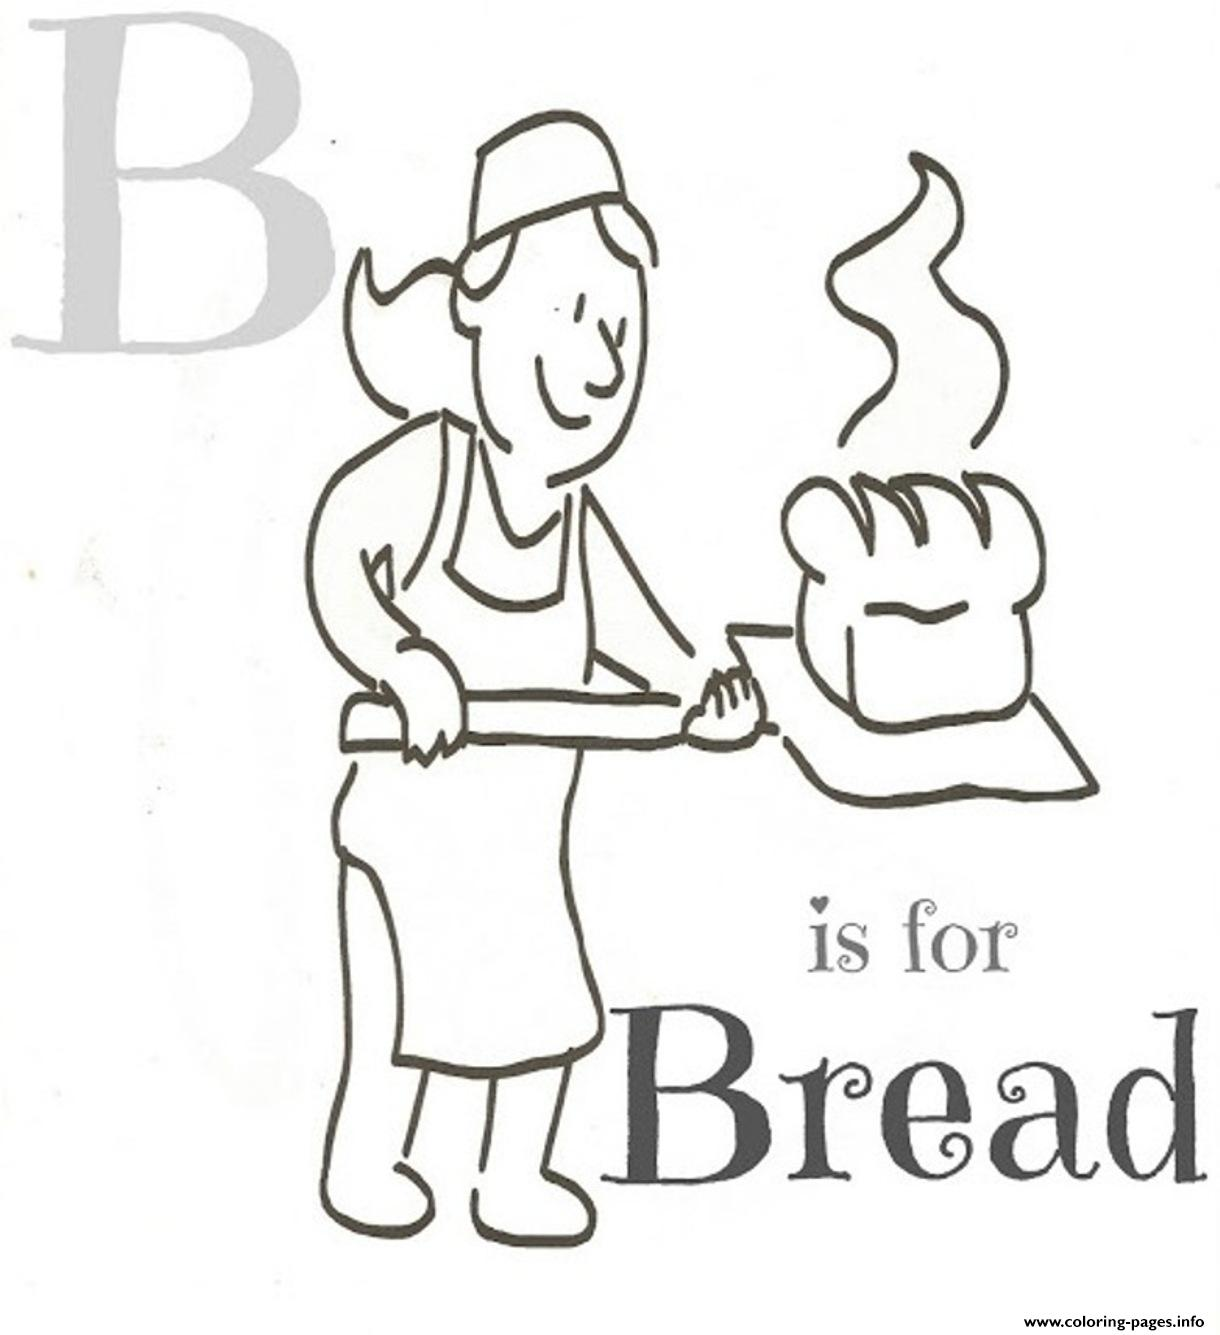 Alphabet S B Is For Breadfe57 Coloring Pages Printable